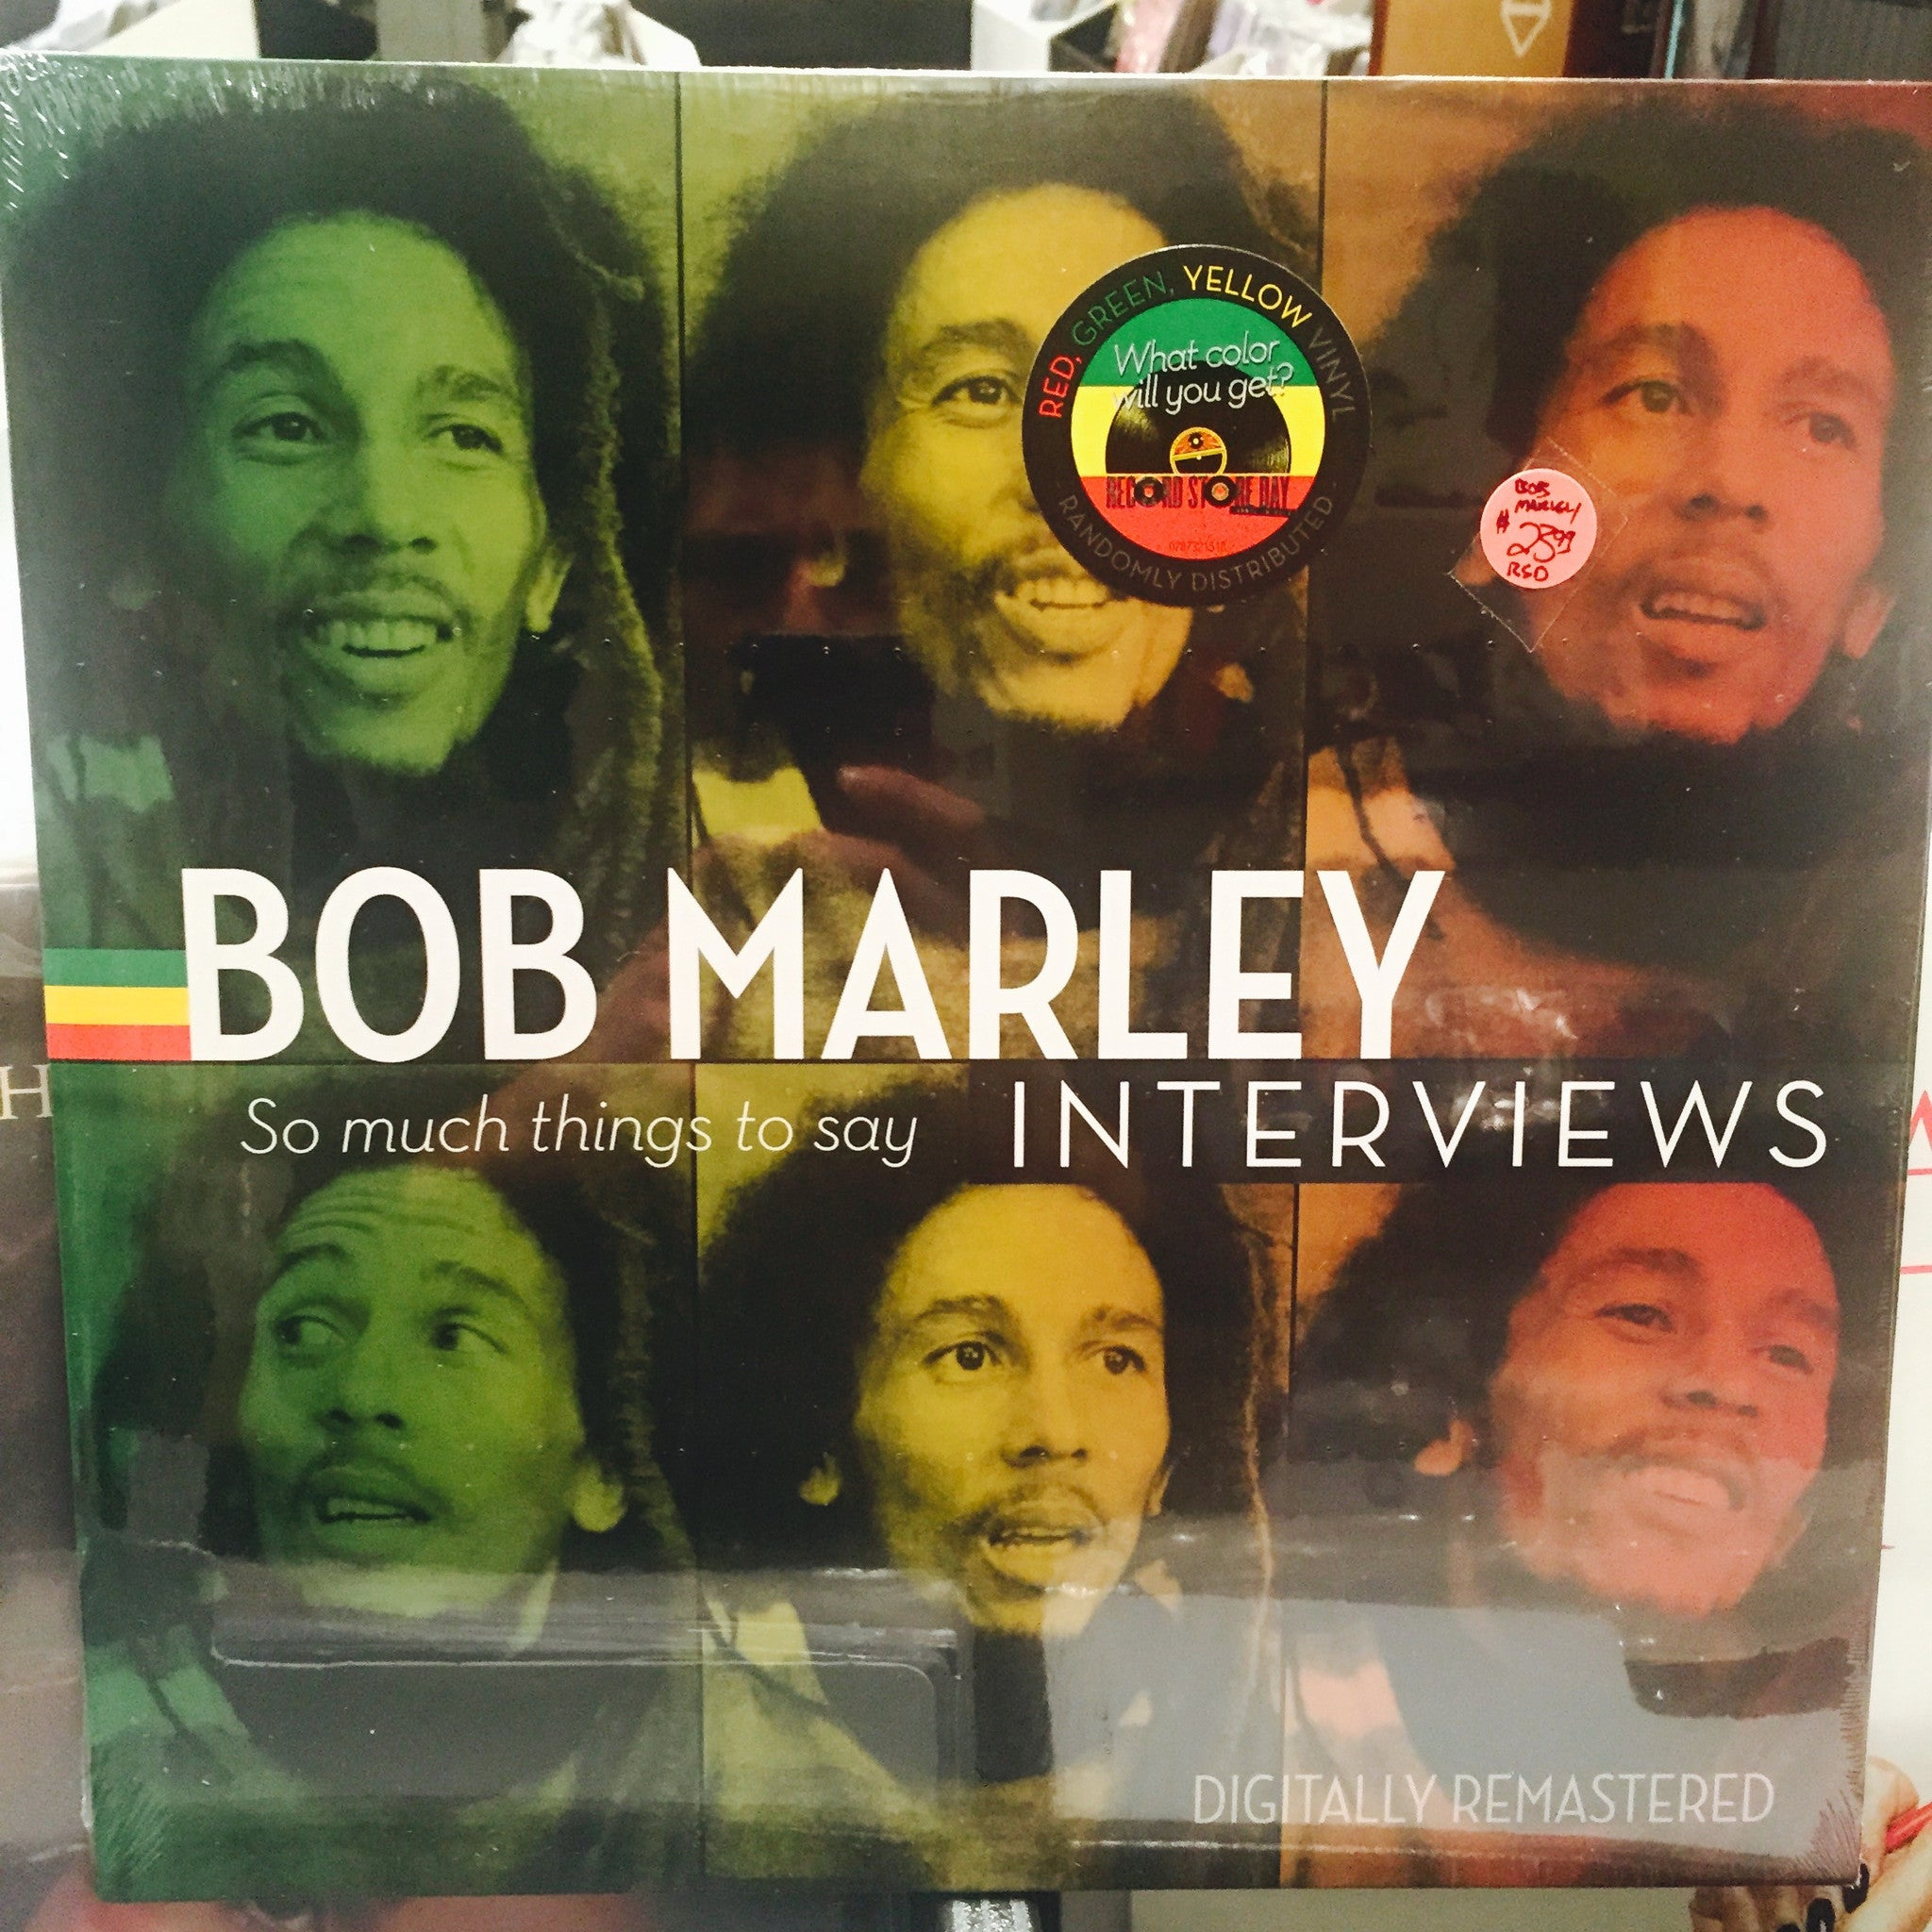 "Bob Marley Bob Marley Interviews--So Much Things To Say 12"" LP (RSD 2015)"